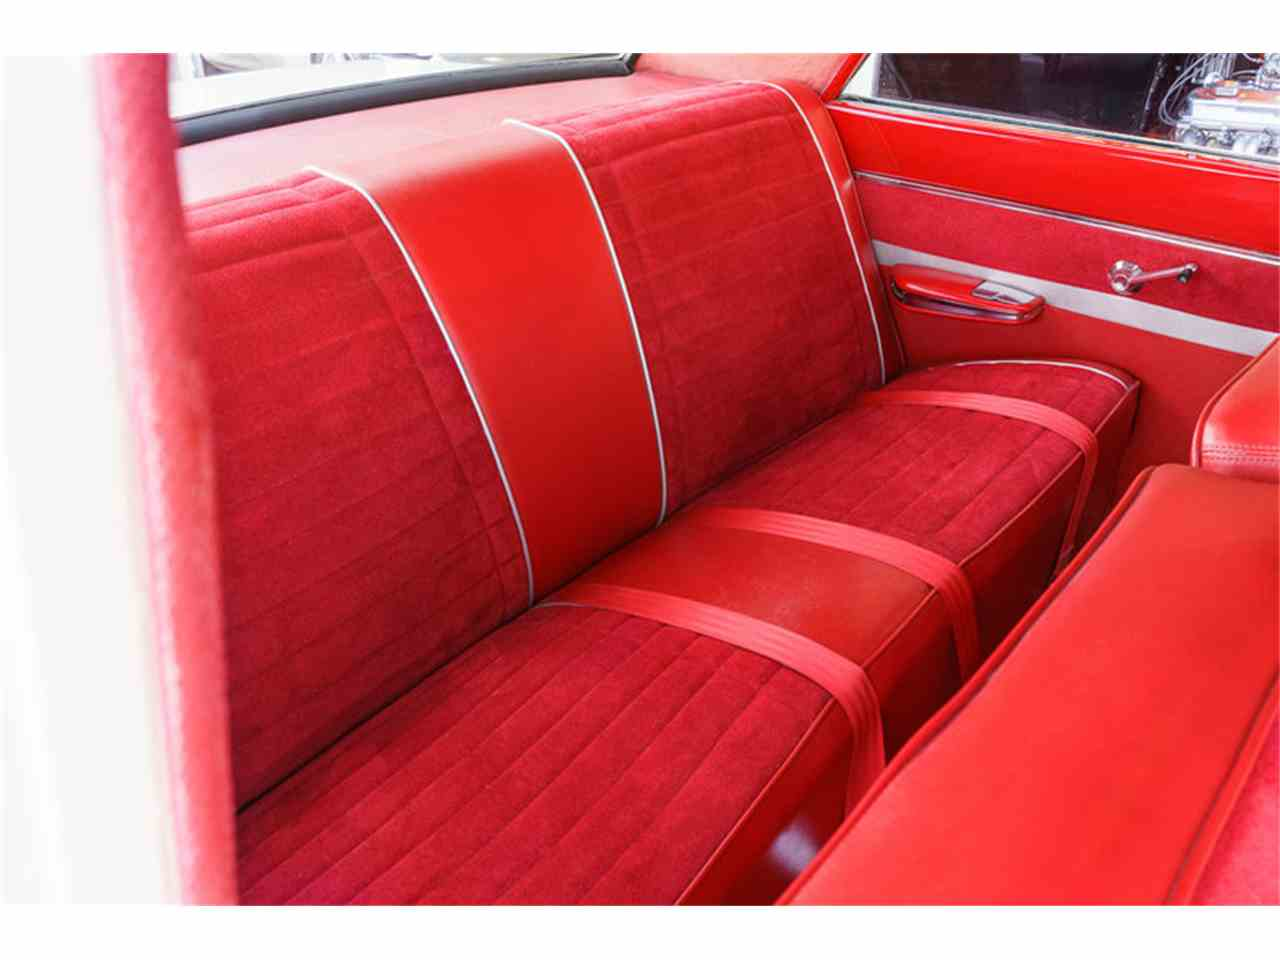 Large Picture of Classic 1964 Model A located in St. Charles Missouri - $32,995.00 Offered by Fast Lane Classic Cars Inc. - GX4F